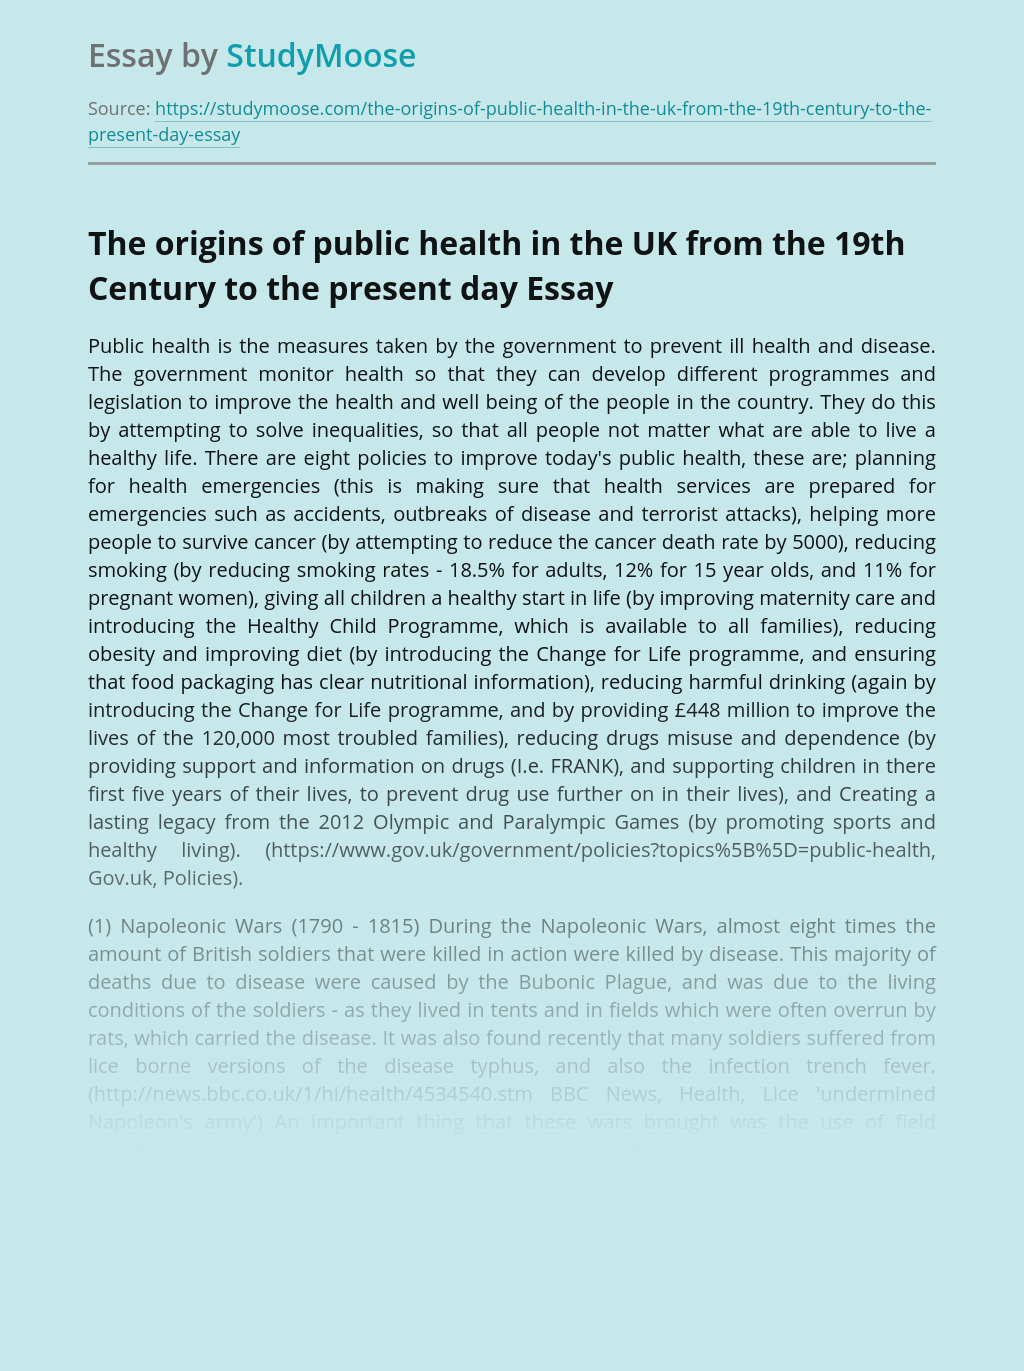 The origins of public health in the UK from the 19th Century to the present day